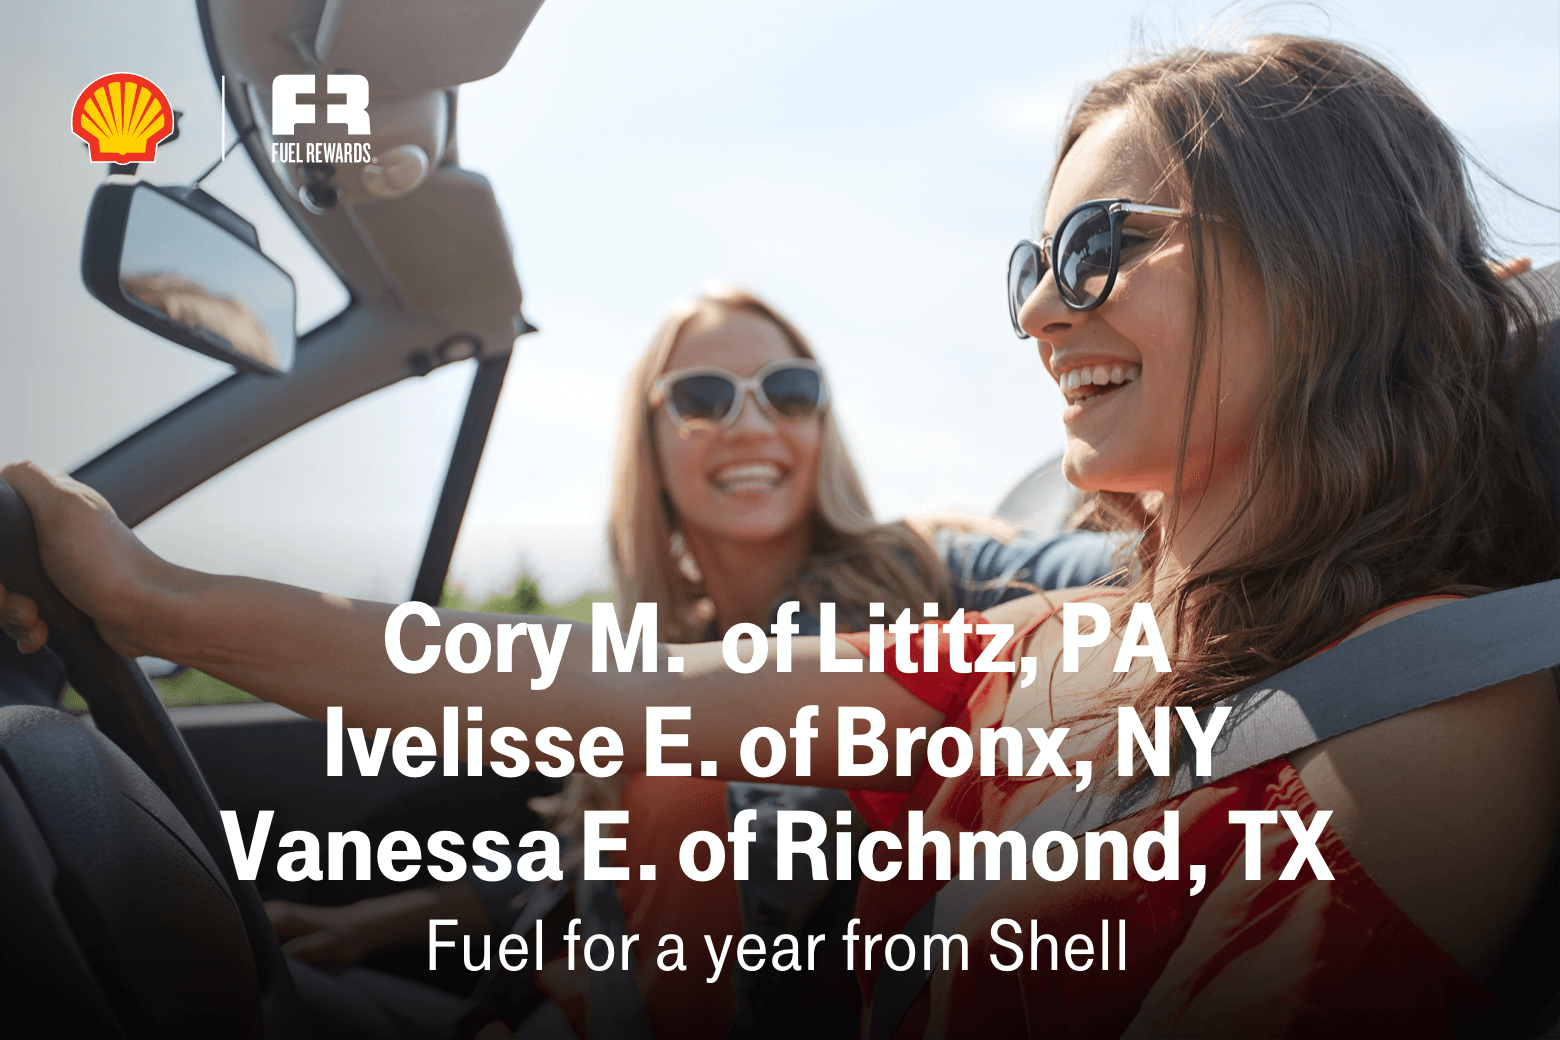 Shell. Fuel Rewards. Cory M. of Lititz, PA. Ivelisse E. of Bronx, NY. Vanessa E. of Richmond, TX. Fuel for a year from Shell.